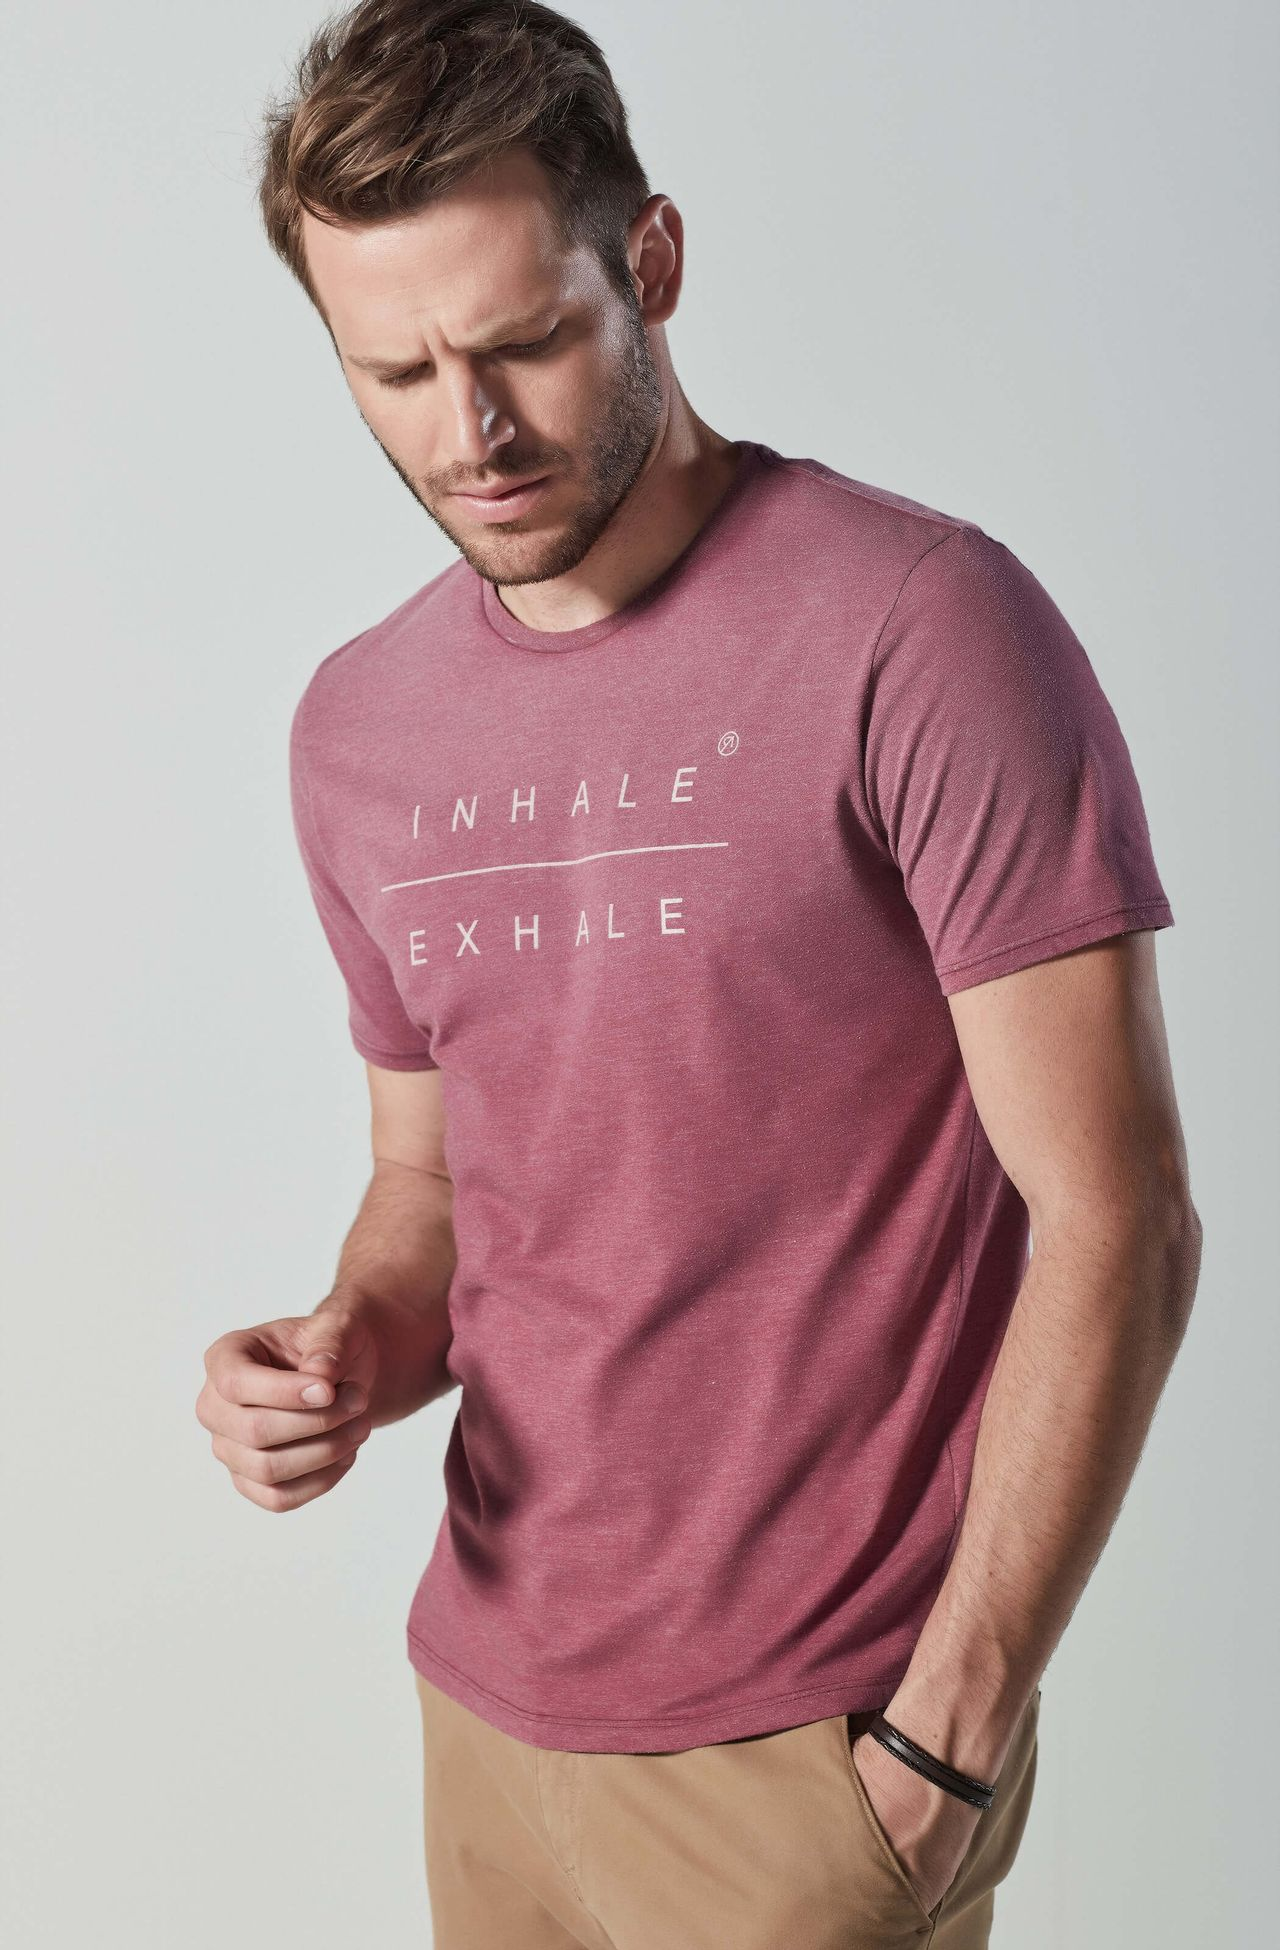 8353CCZ00029_399_1-TSHIRT-MC-INHALE-EXHALE